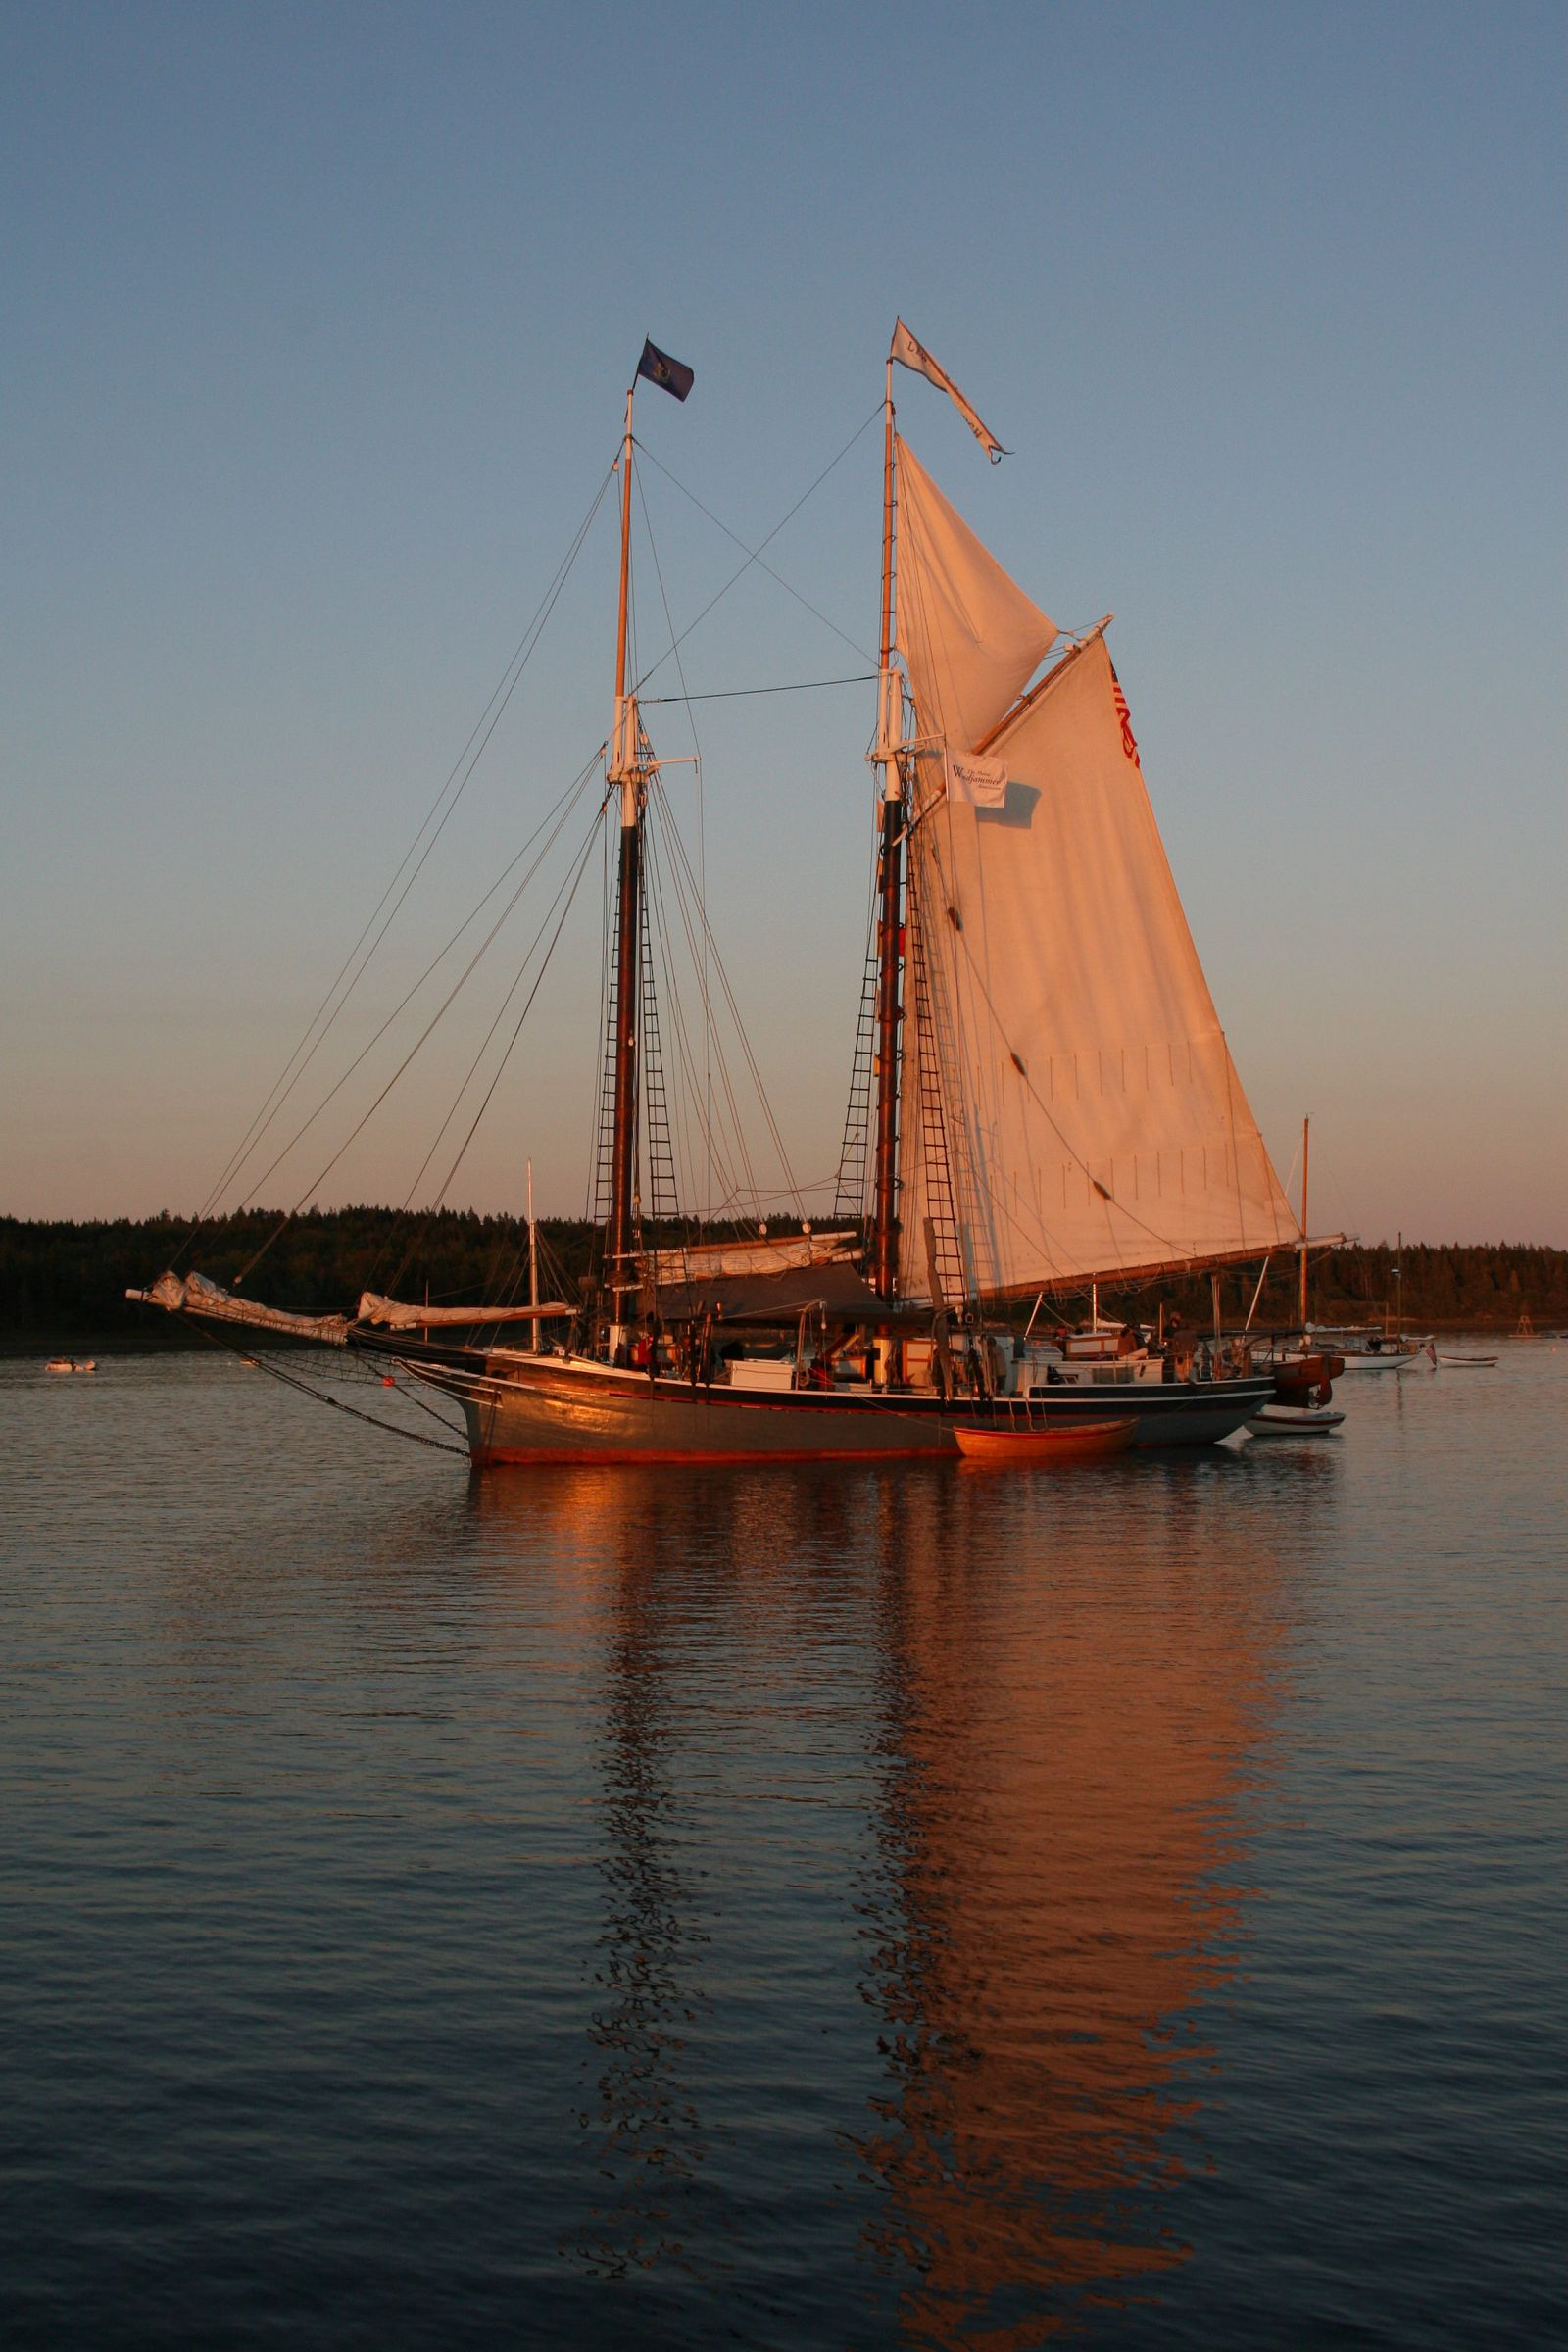 Windjammer French anchored - Photo by Neil Parent